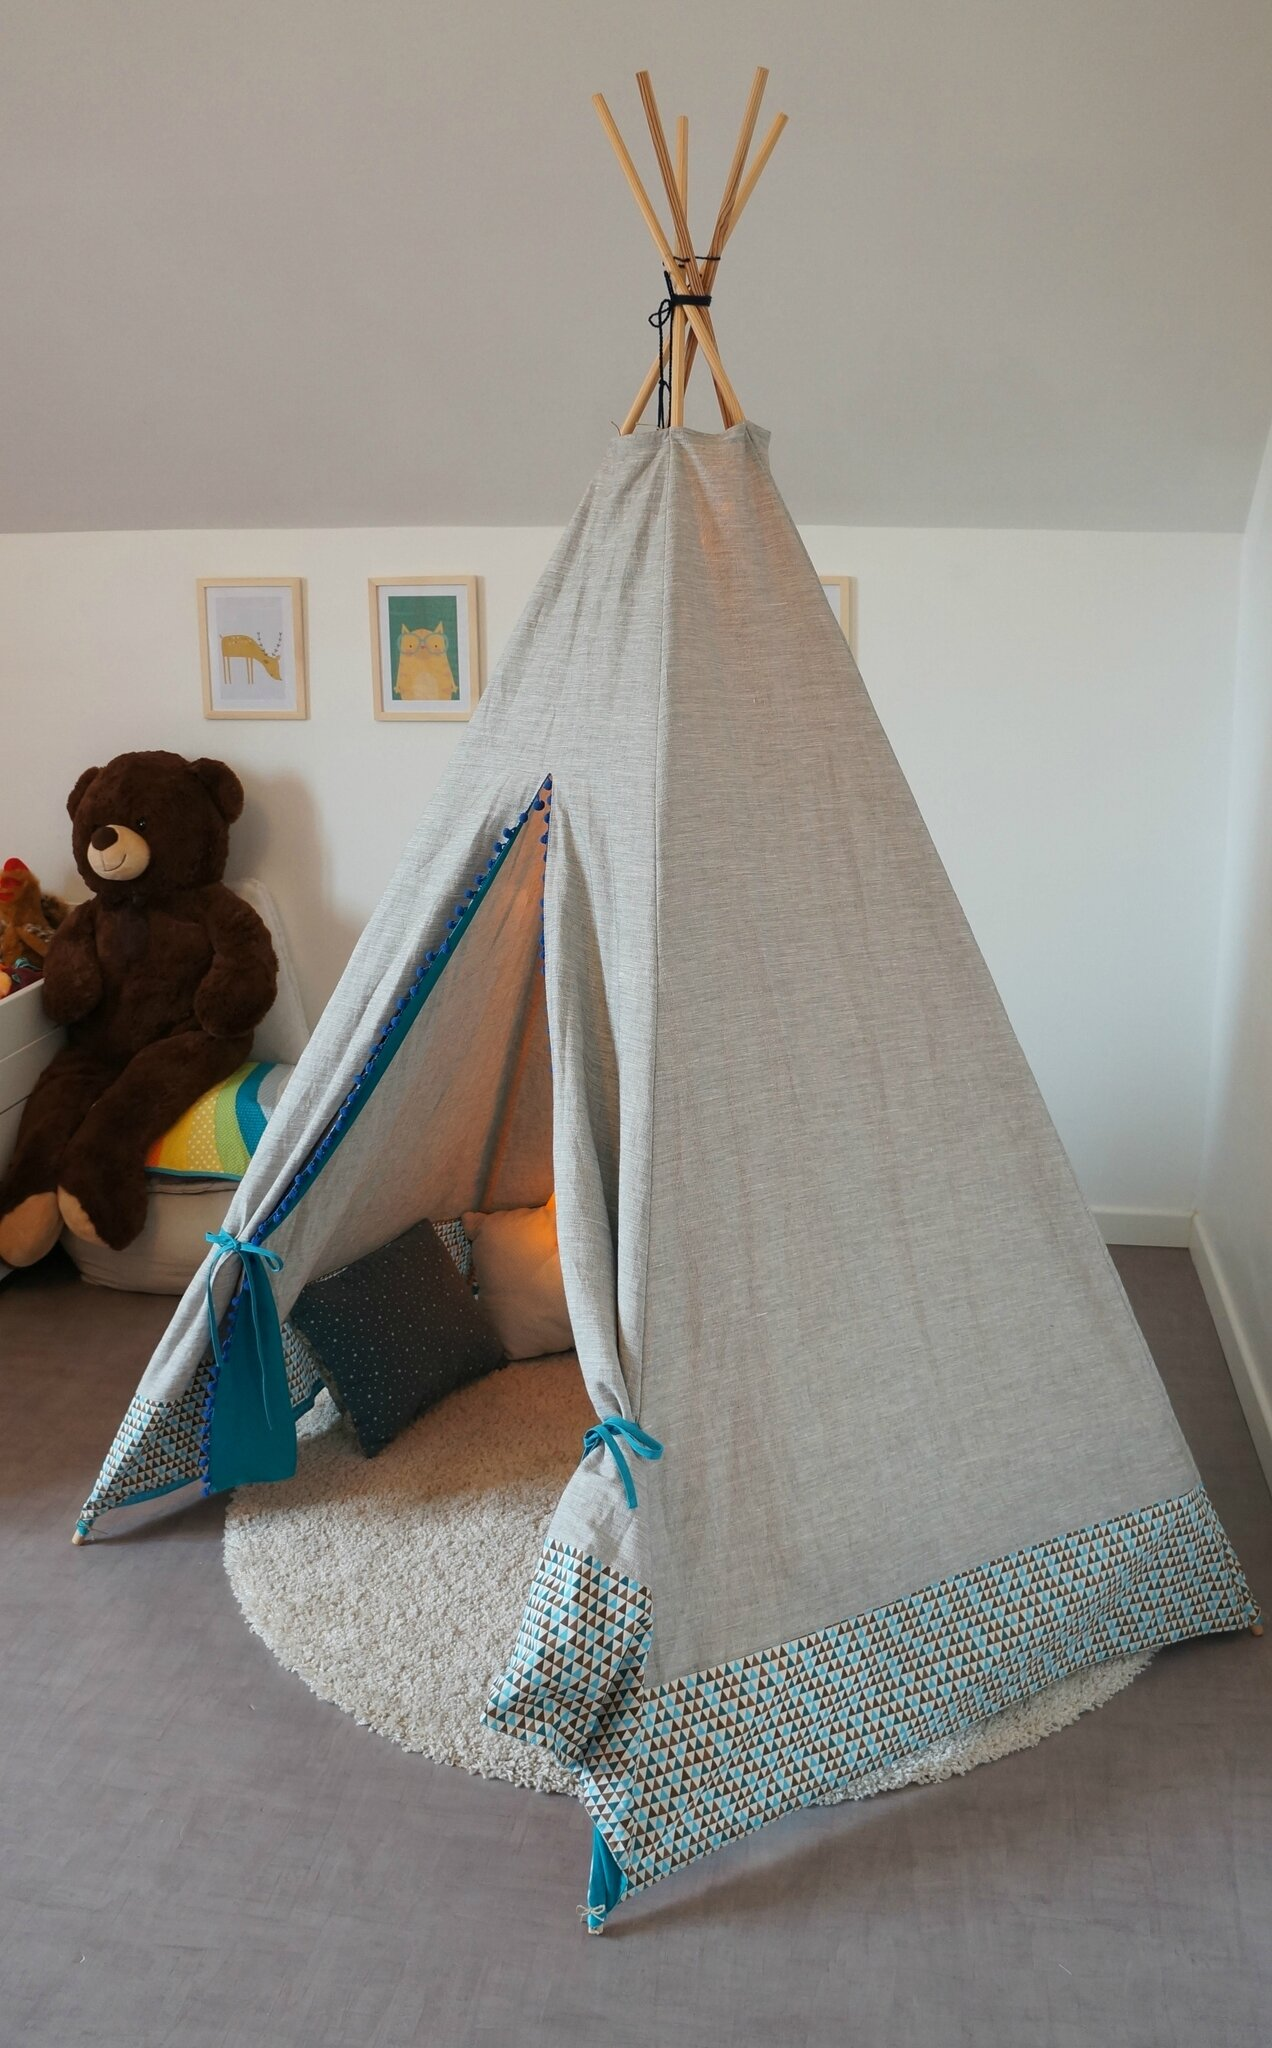 le tipi et la d co de la chambre de louison les chiffonneries du chat. Black Bedroom Furniture Sets. Home Design Ideas